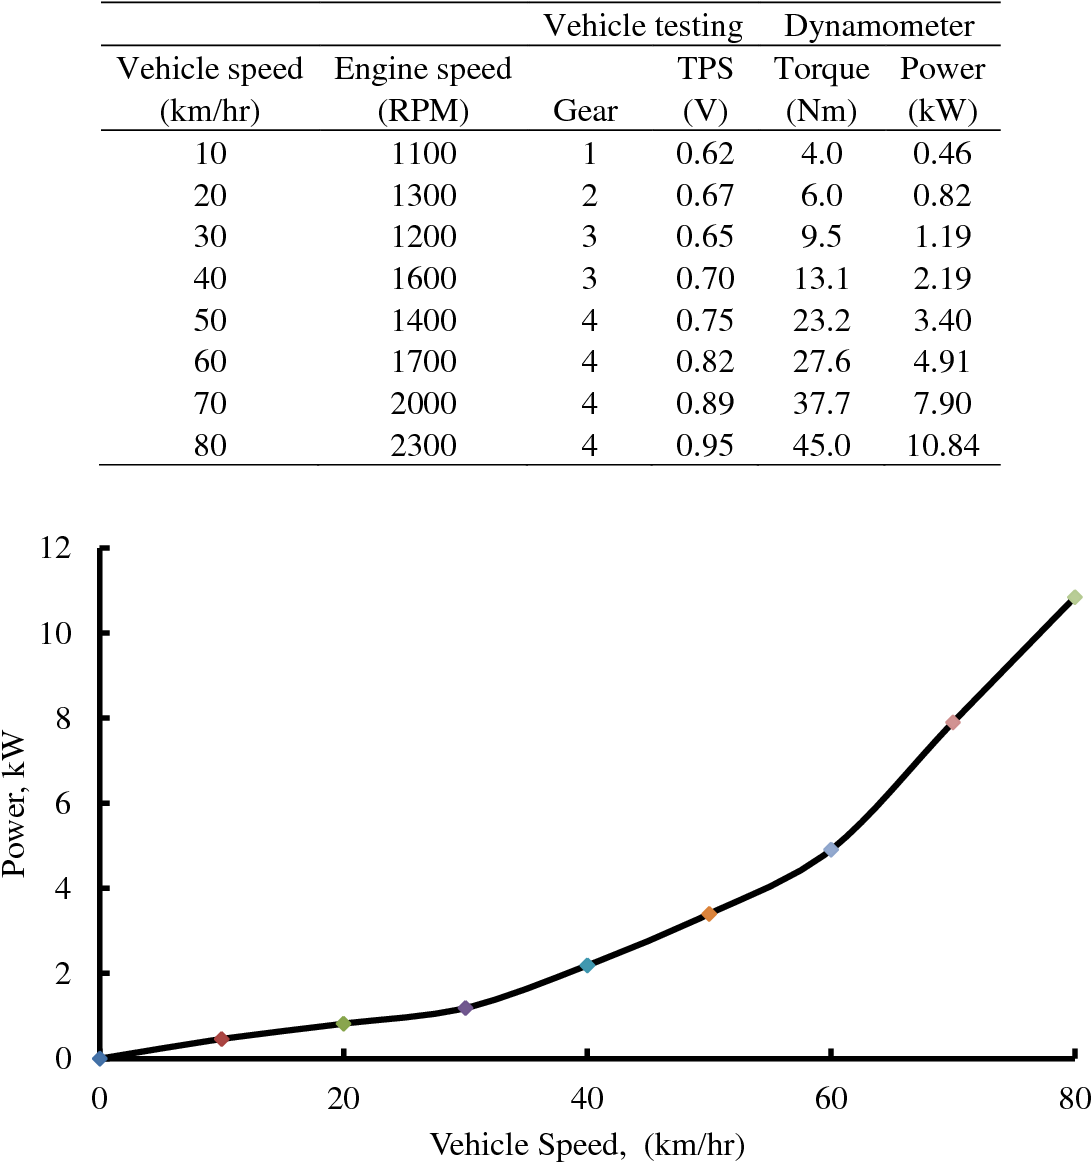 PDF] VALIDATION OF ROAD LOAD CHARACTERISTIC OF A SUB-COMPACT VEHICLE